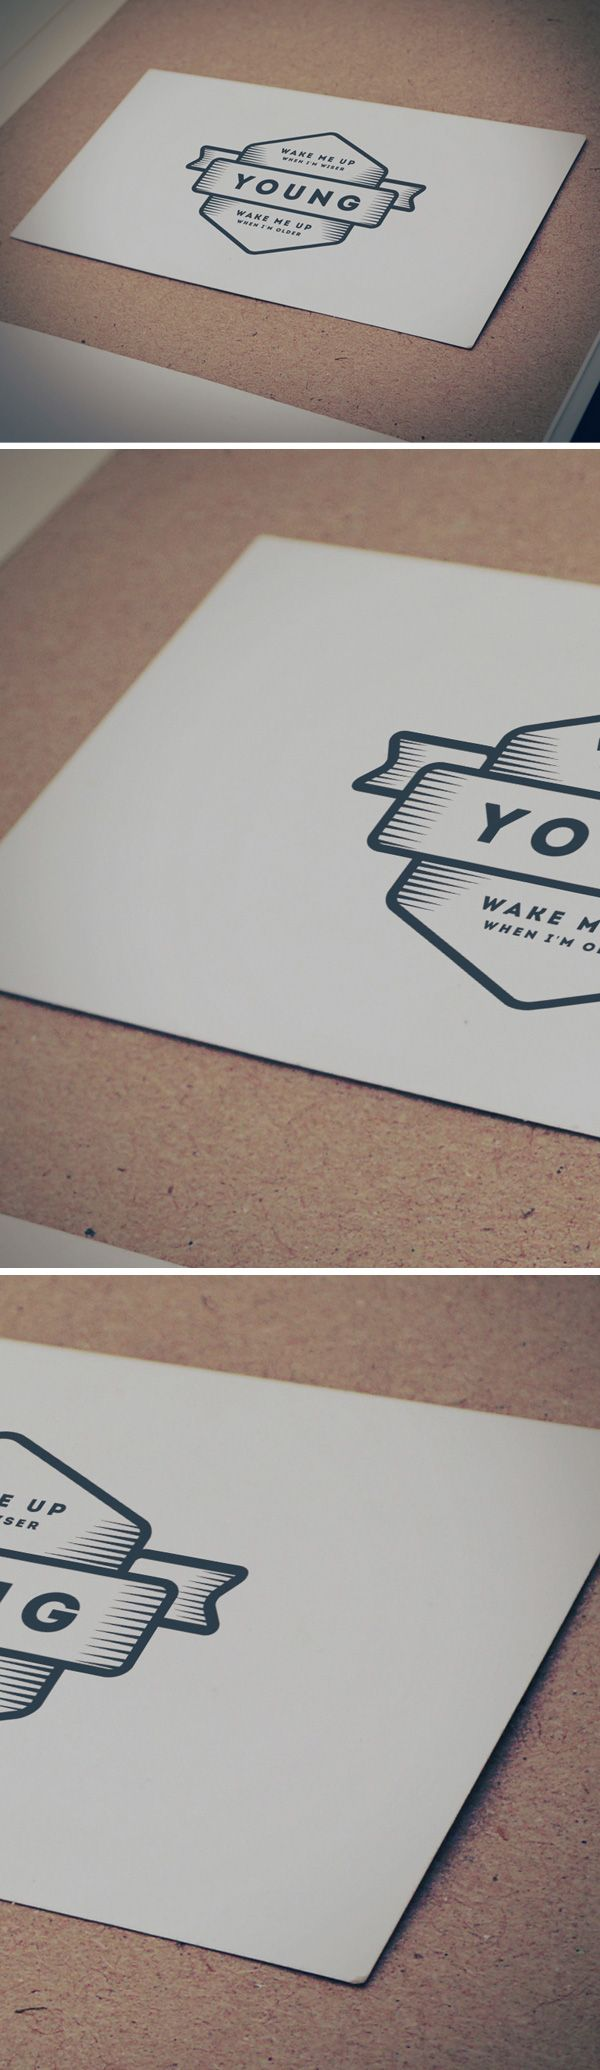 Vintage Logo #MockUp PSD | GraphicBurger Design may used in somewhere